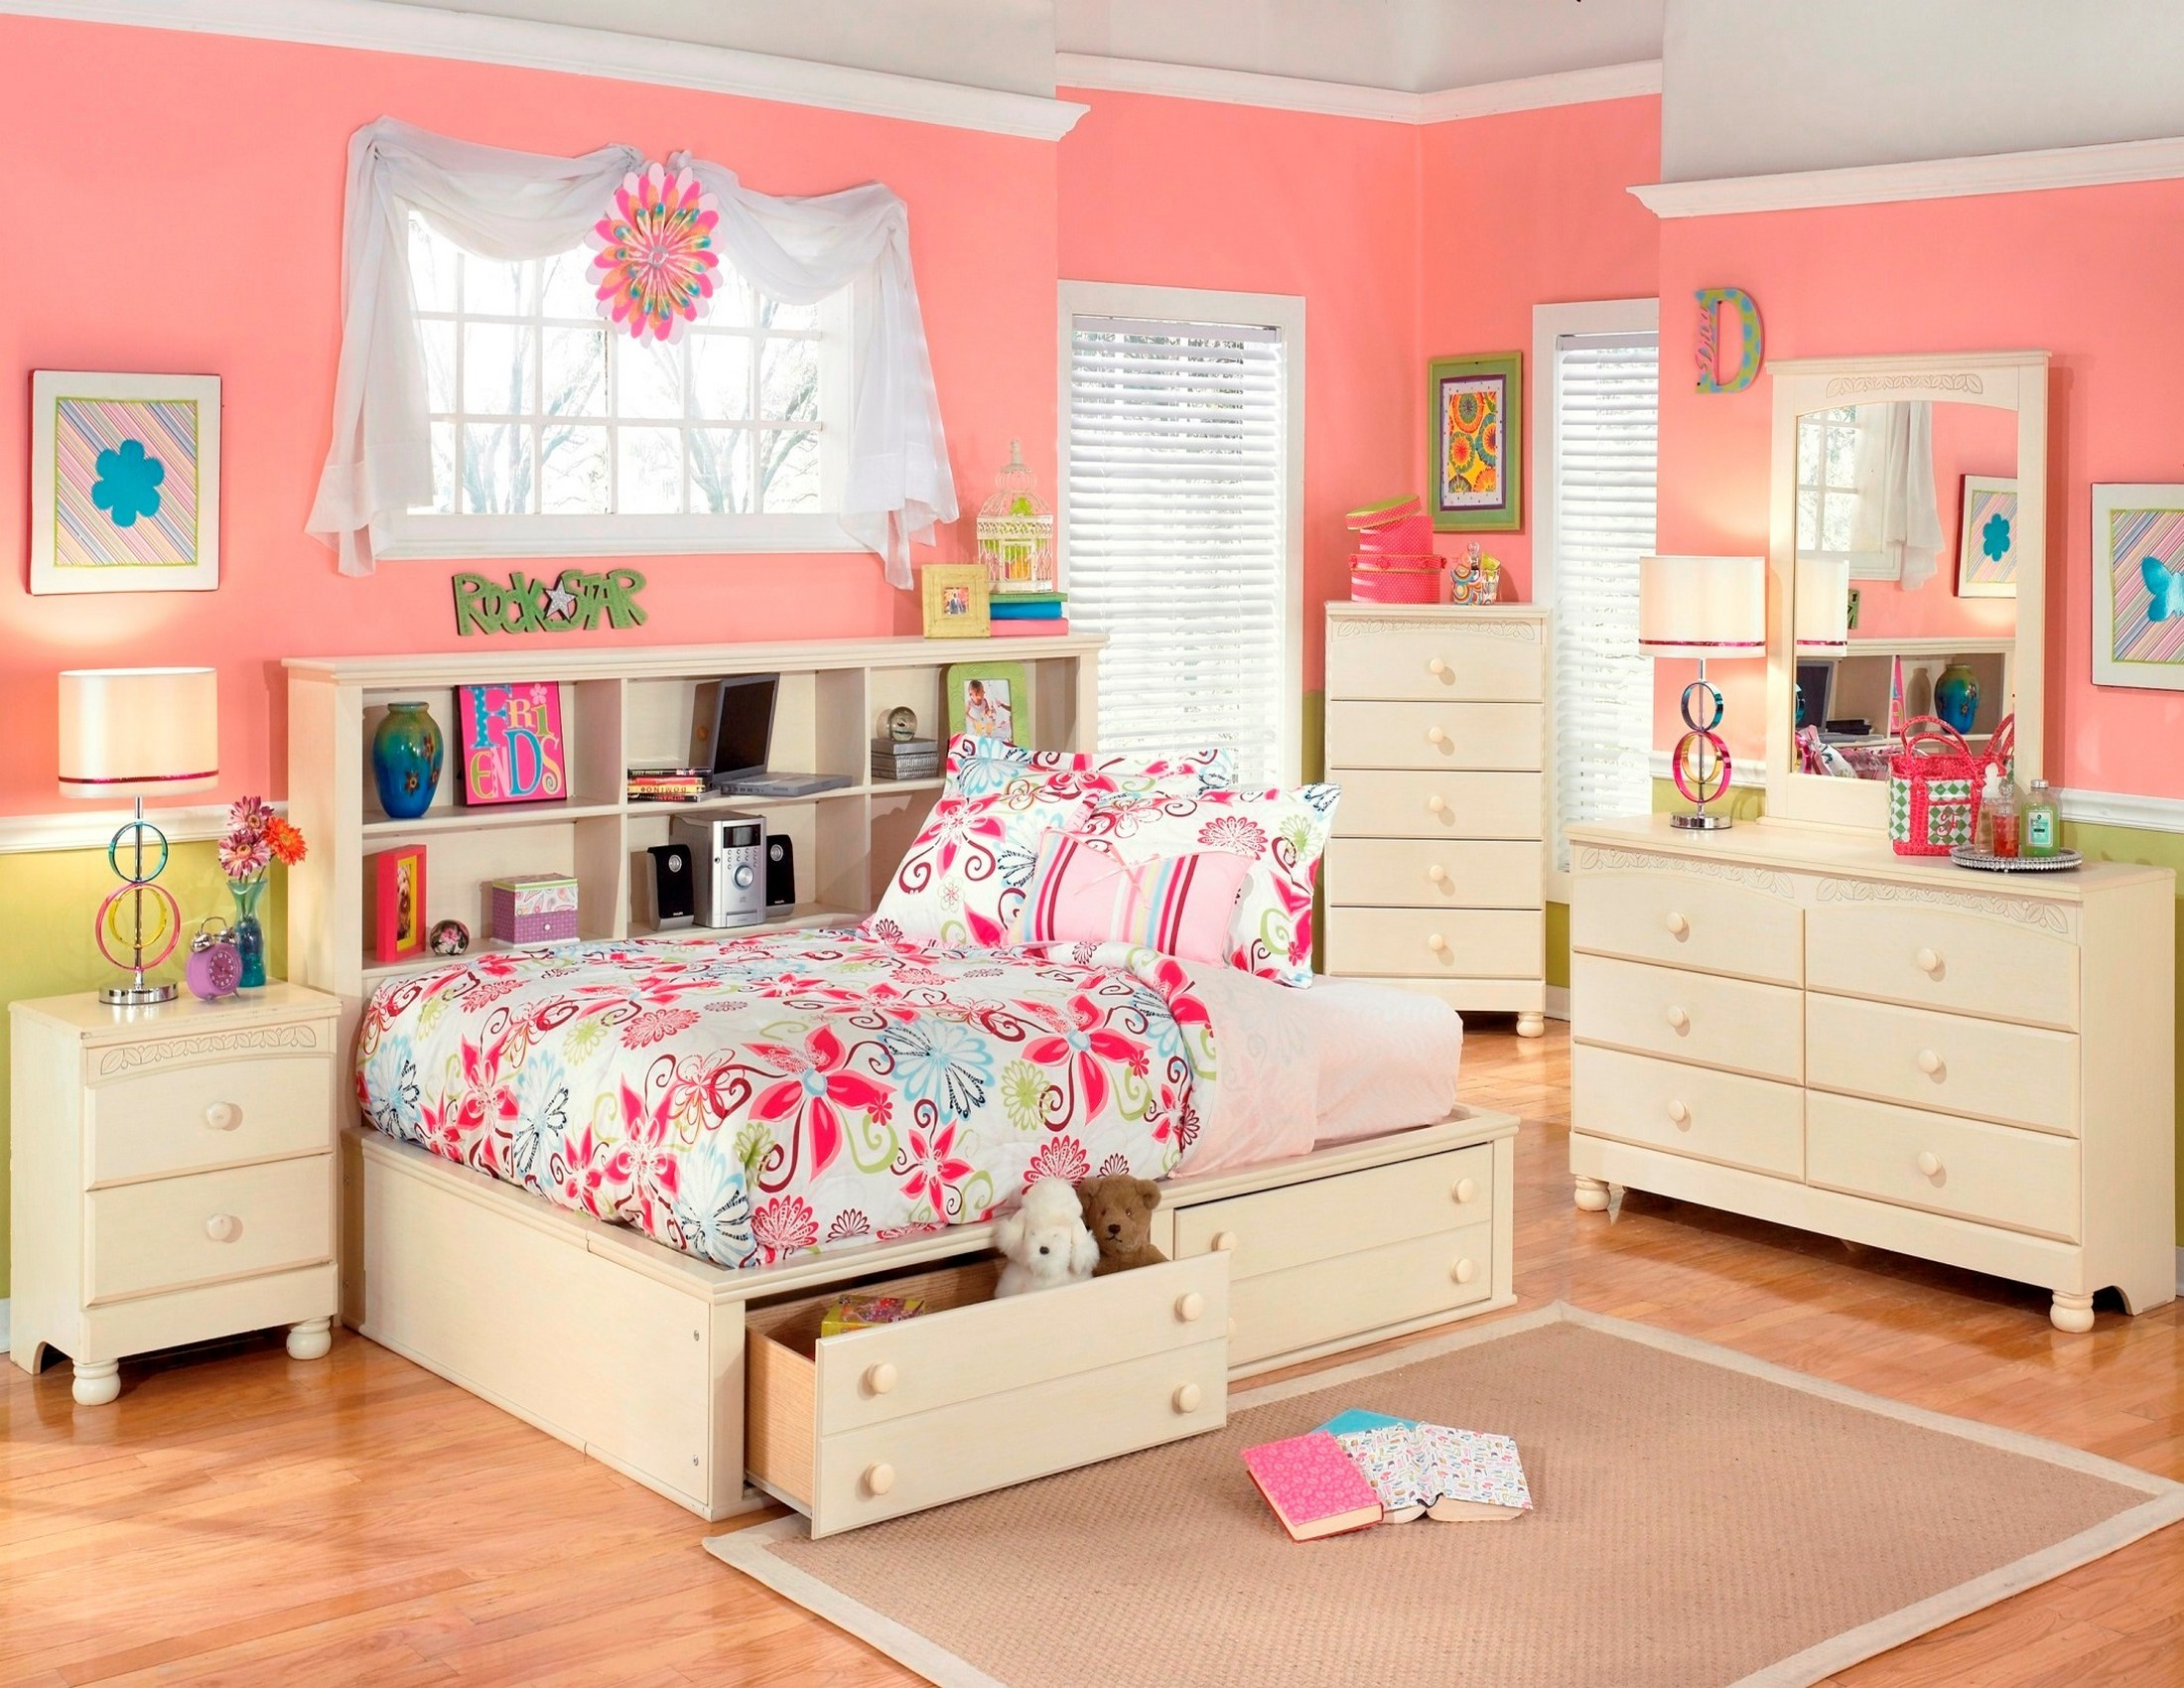 Cottage Retreat Youth Bedside Storage Bedroom Set From Ashley B213 05 85 90 Coleman Furniture